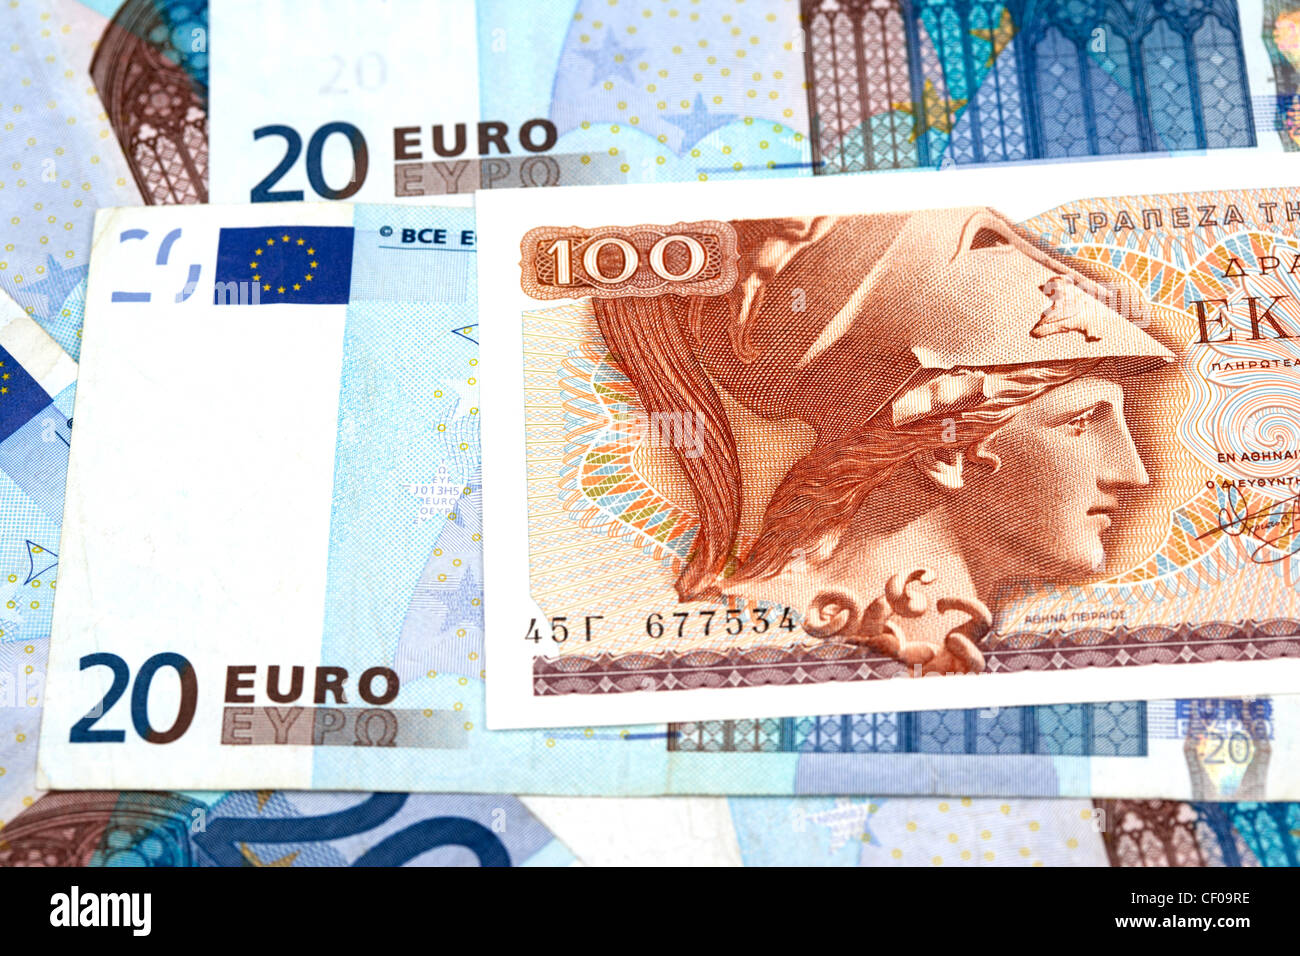 greek drachma and euro banknotes - Stock Image